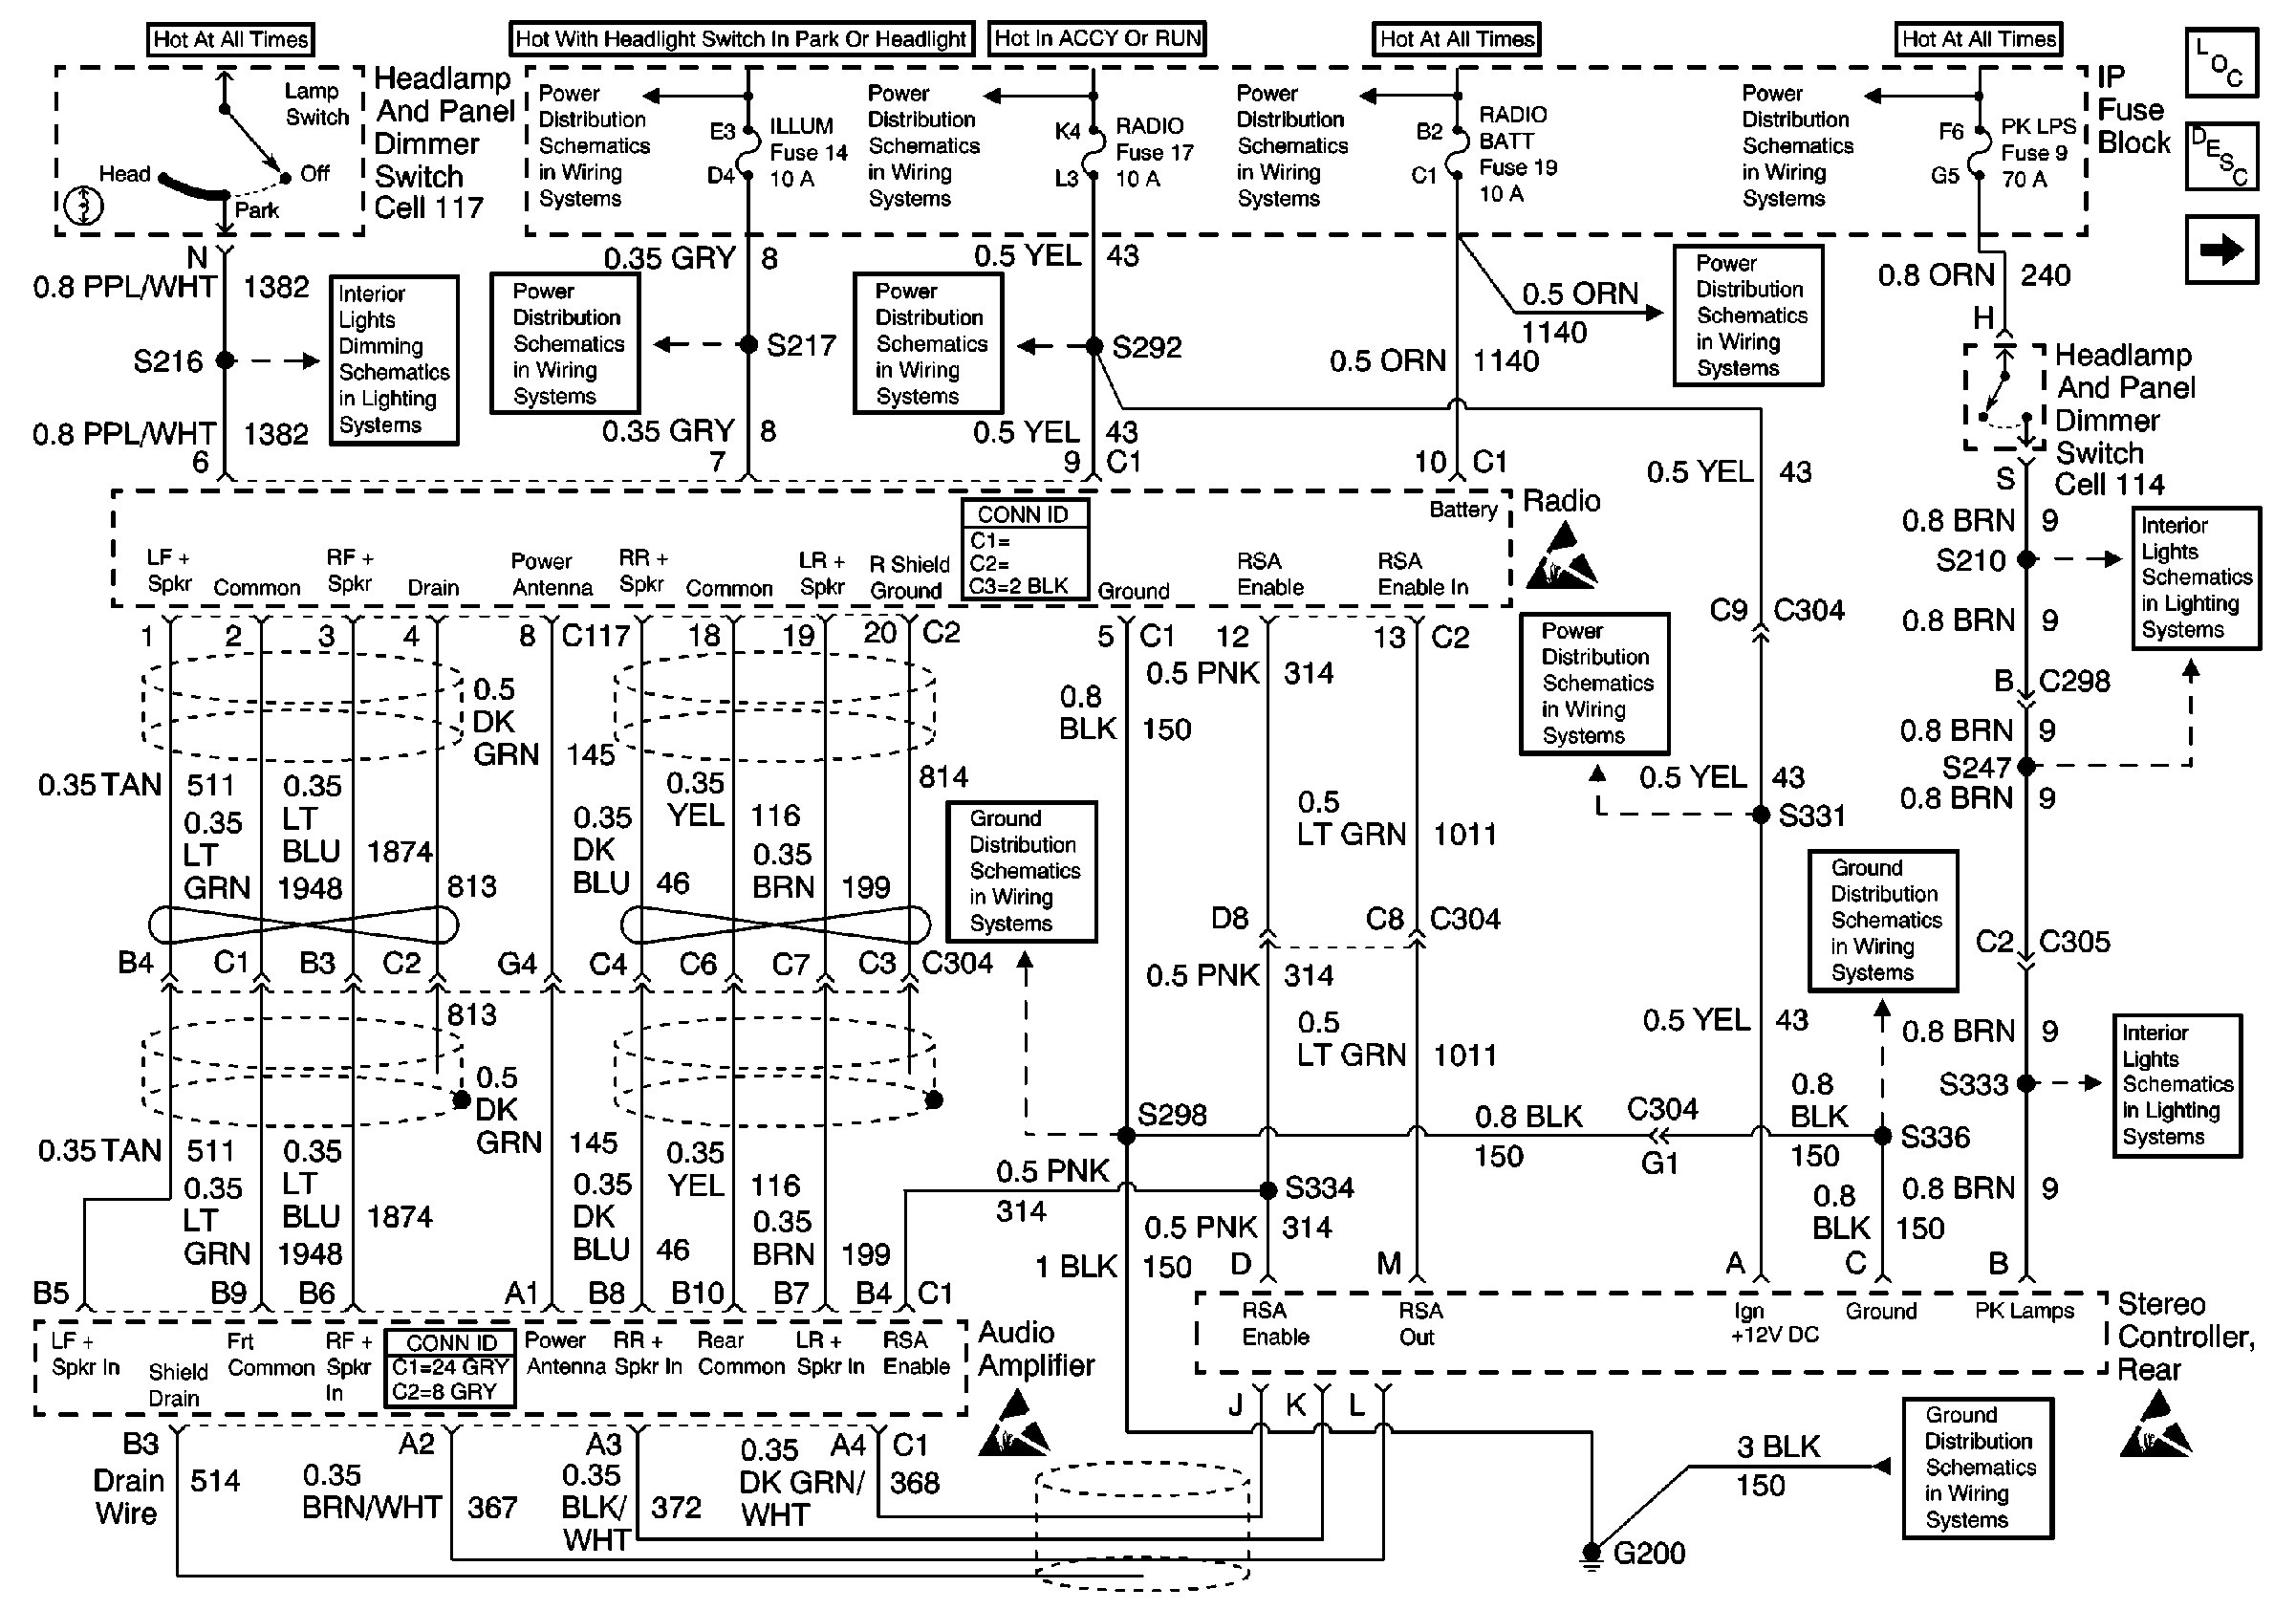 cadillac cts seat wiring diagram enthusiast wiring diagrams \u2022 cadillac cts audio wiring diagram 2008 cadillac cts wiring diagram sunroof trusted wiring diagram rh dafpods co 2003 cadillac cts engine diagram 2003 cadillac cts engine diagram